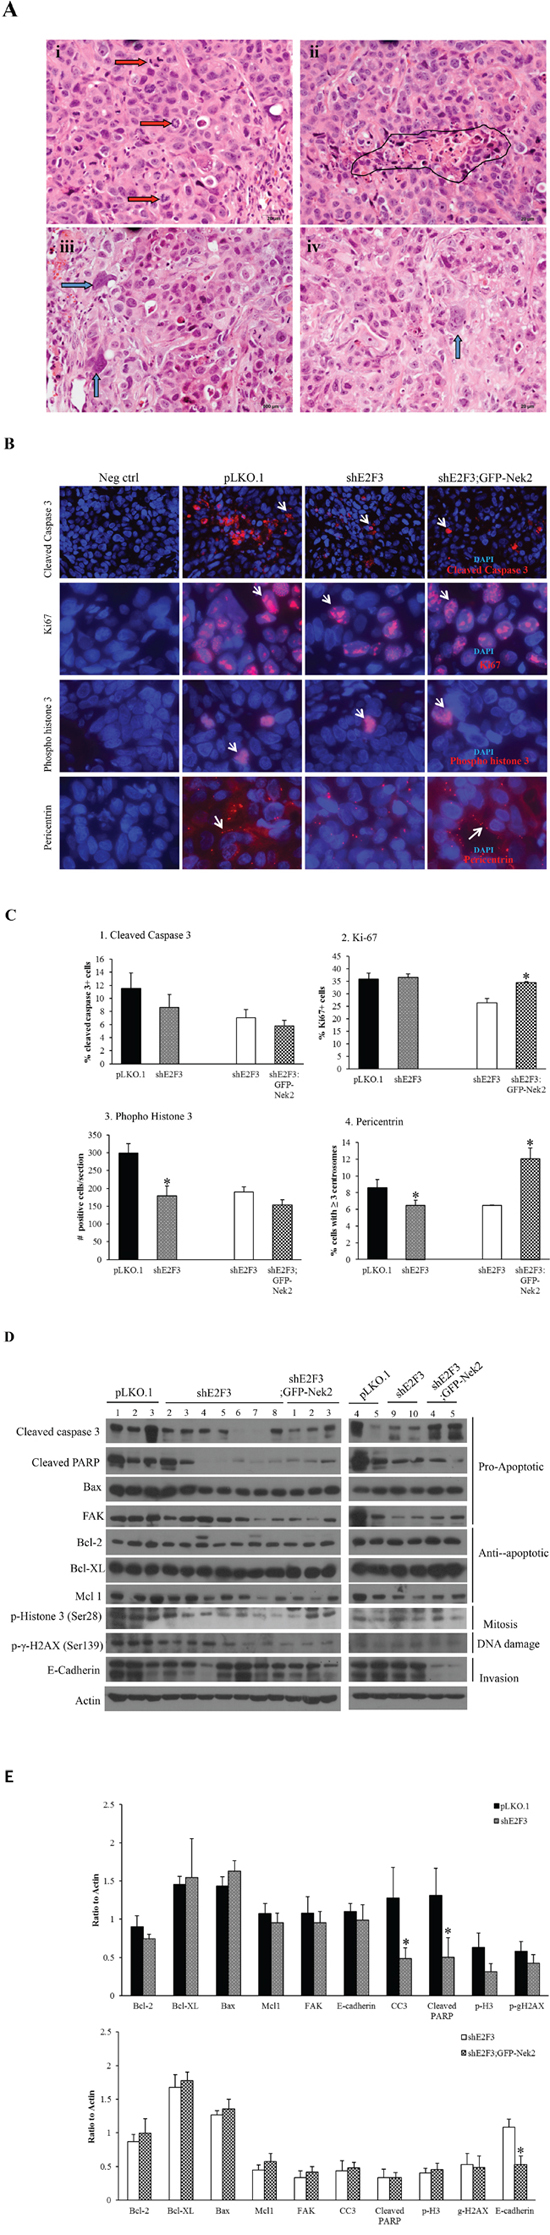 E2F3 knockdown restricts percentage of Her2+ breast tumor cells undergoing mitosis.